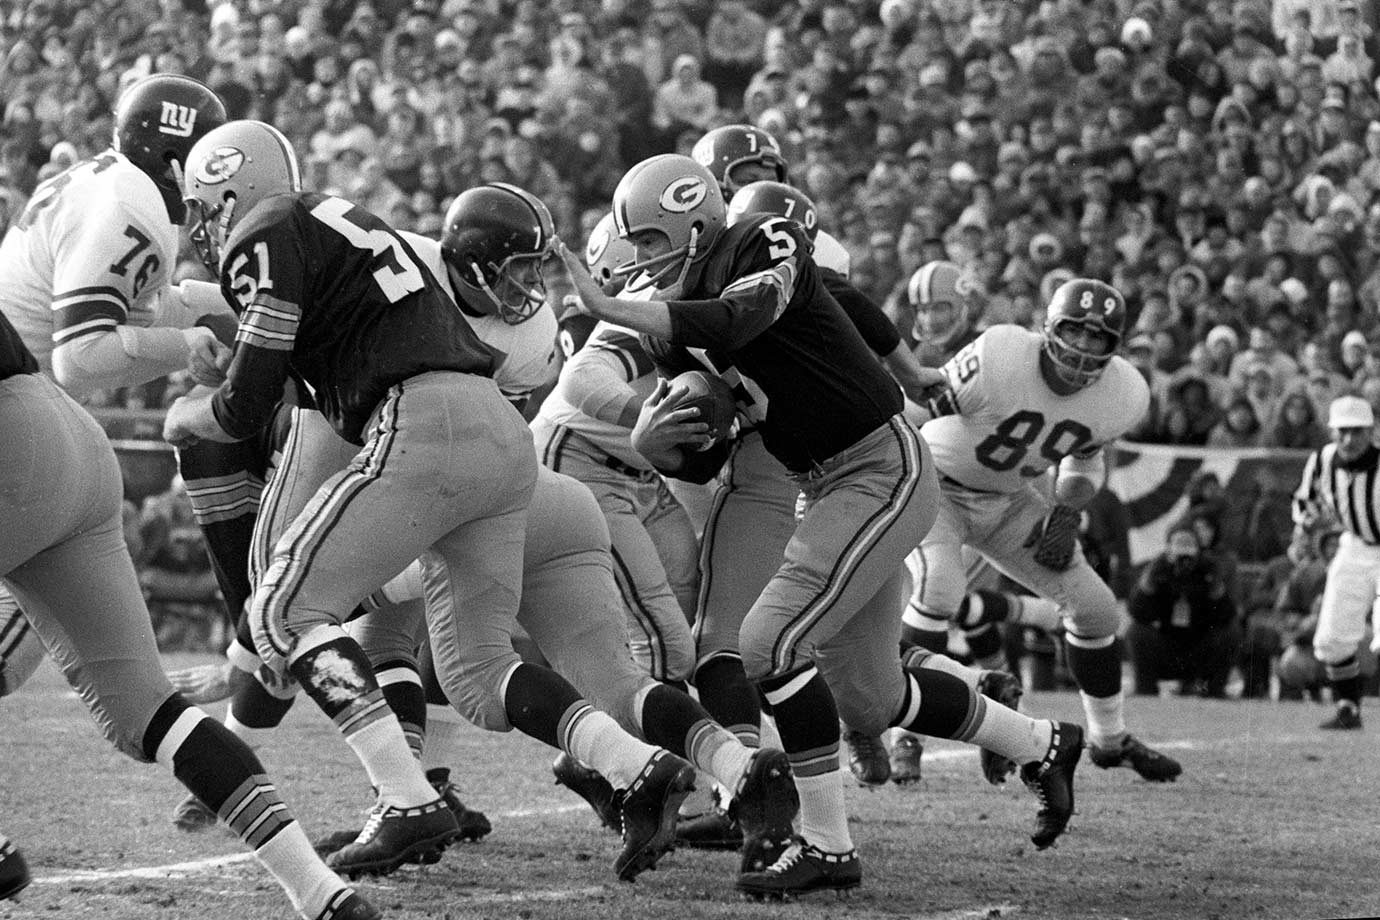 Dec. 31, 1961 (NFL Championship) — Green Bay Packers vs. New York Giants